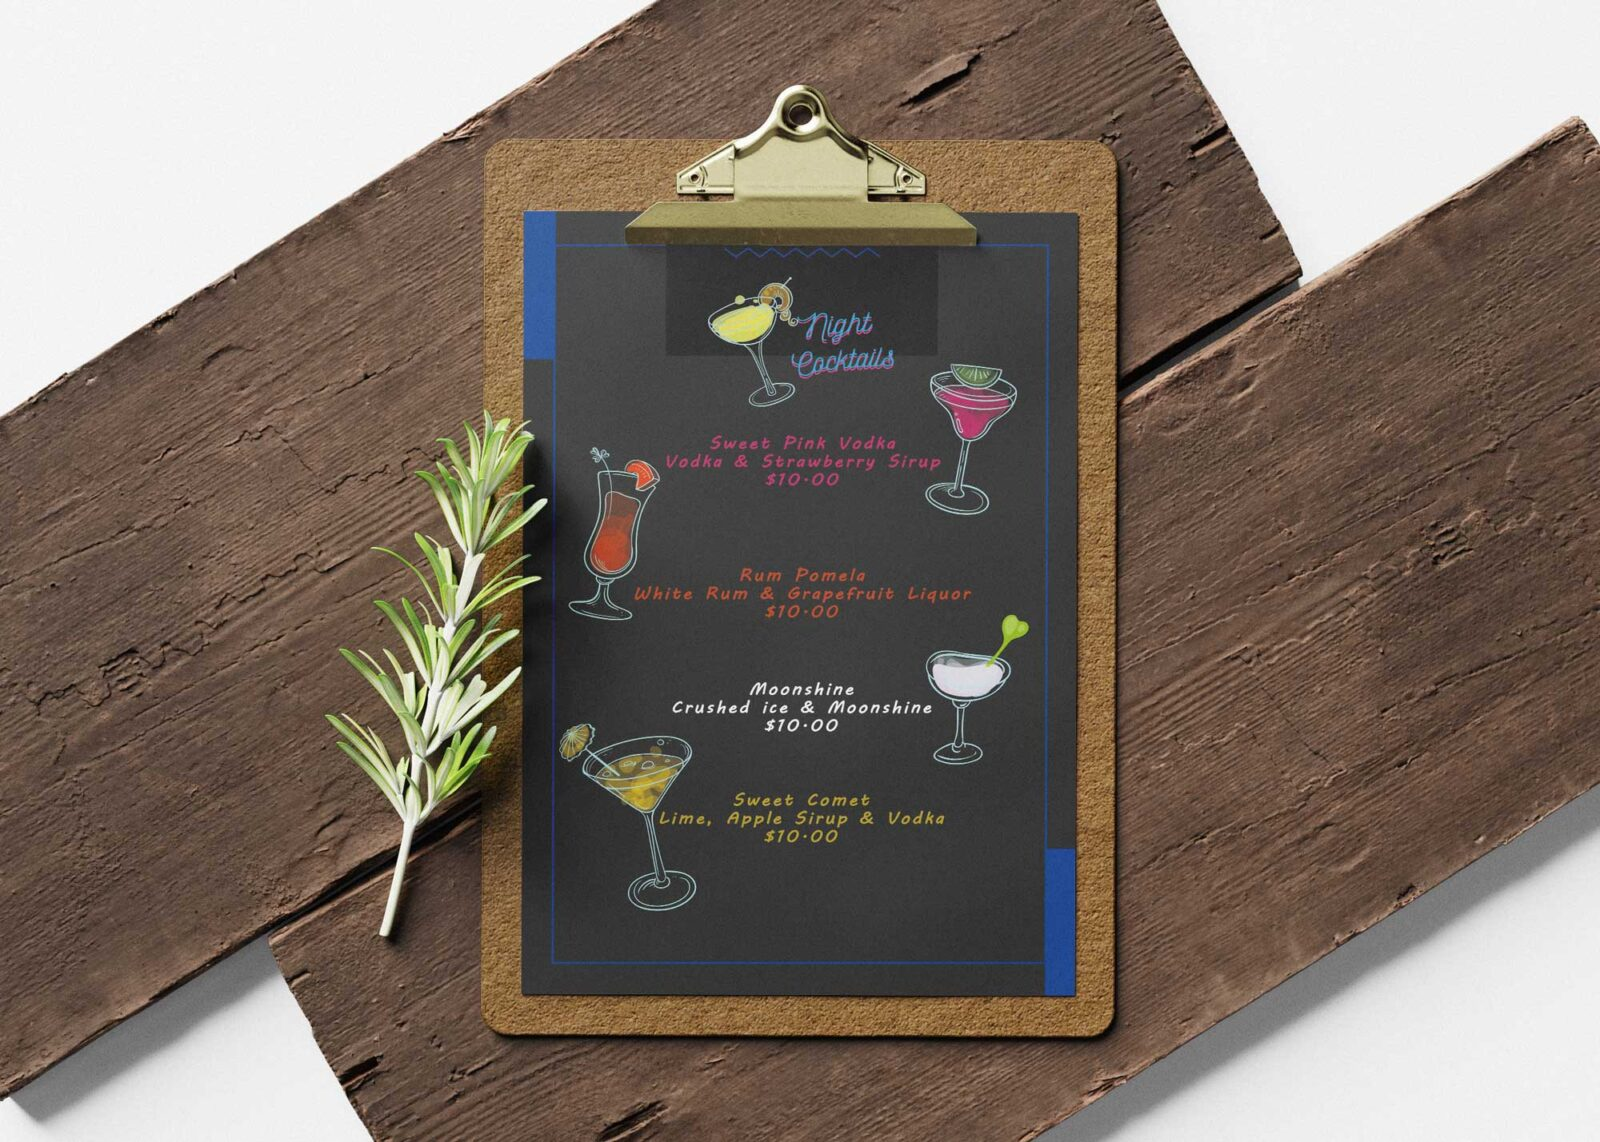 Night Cocktail Party Menu Design Template